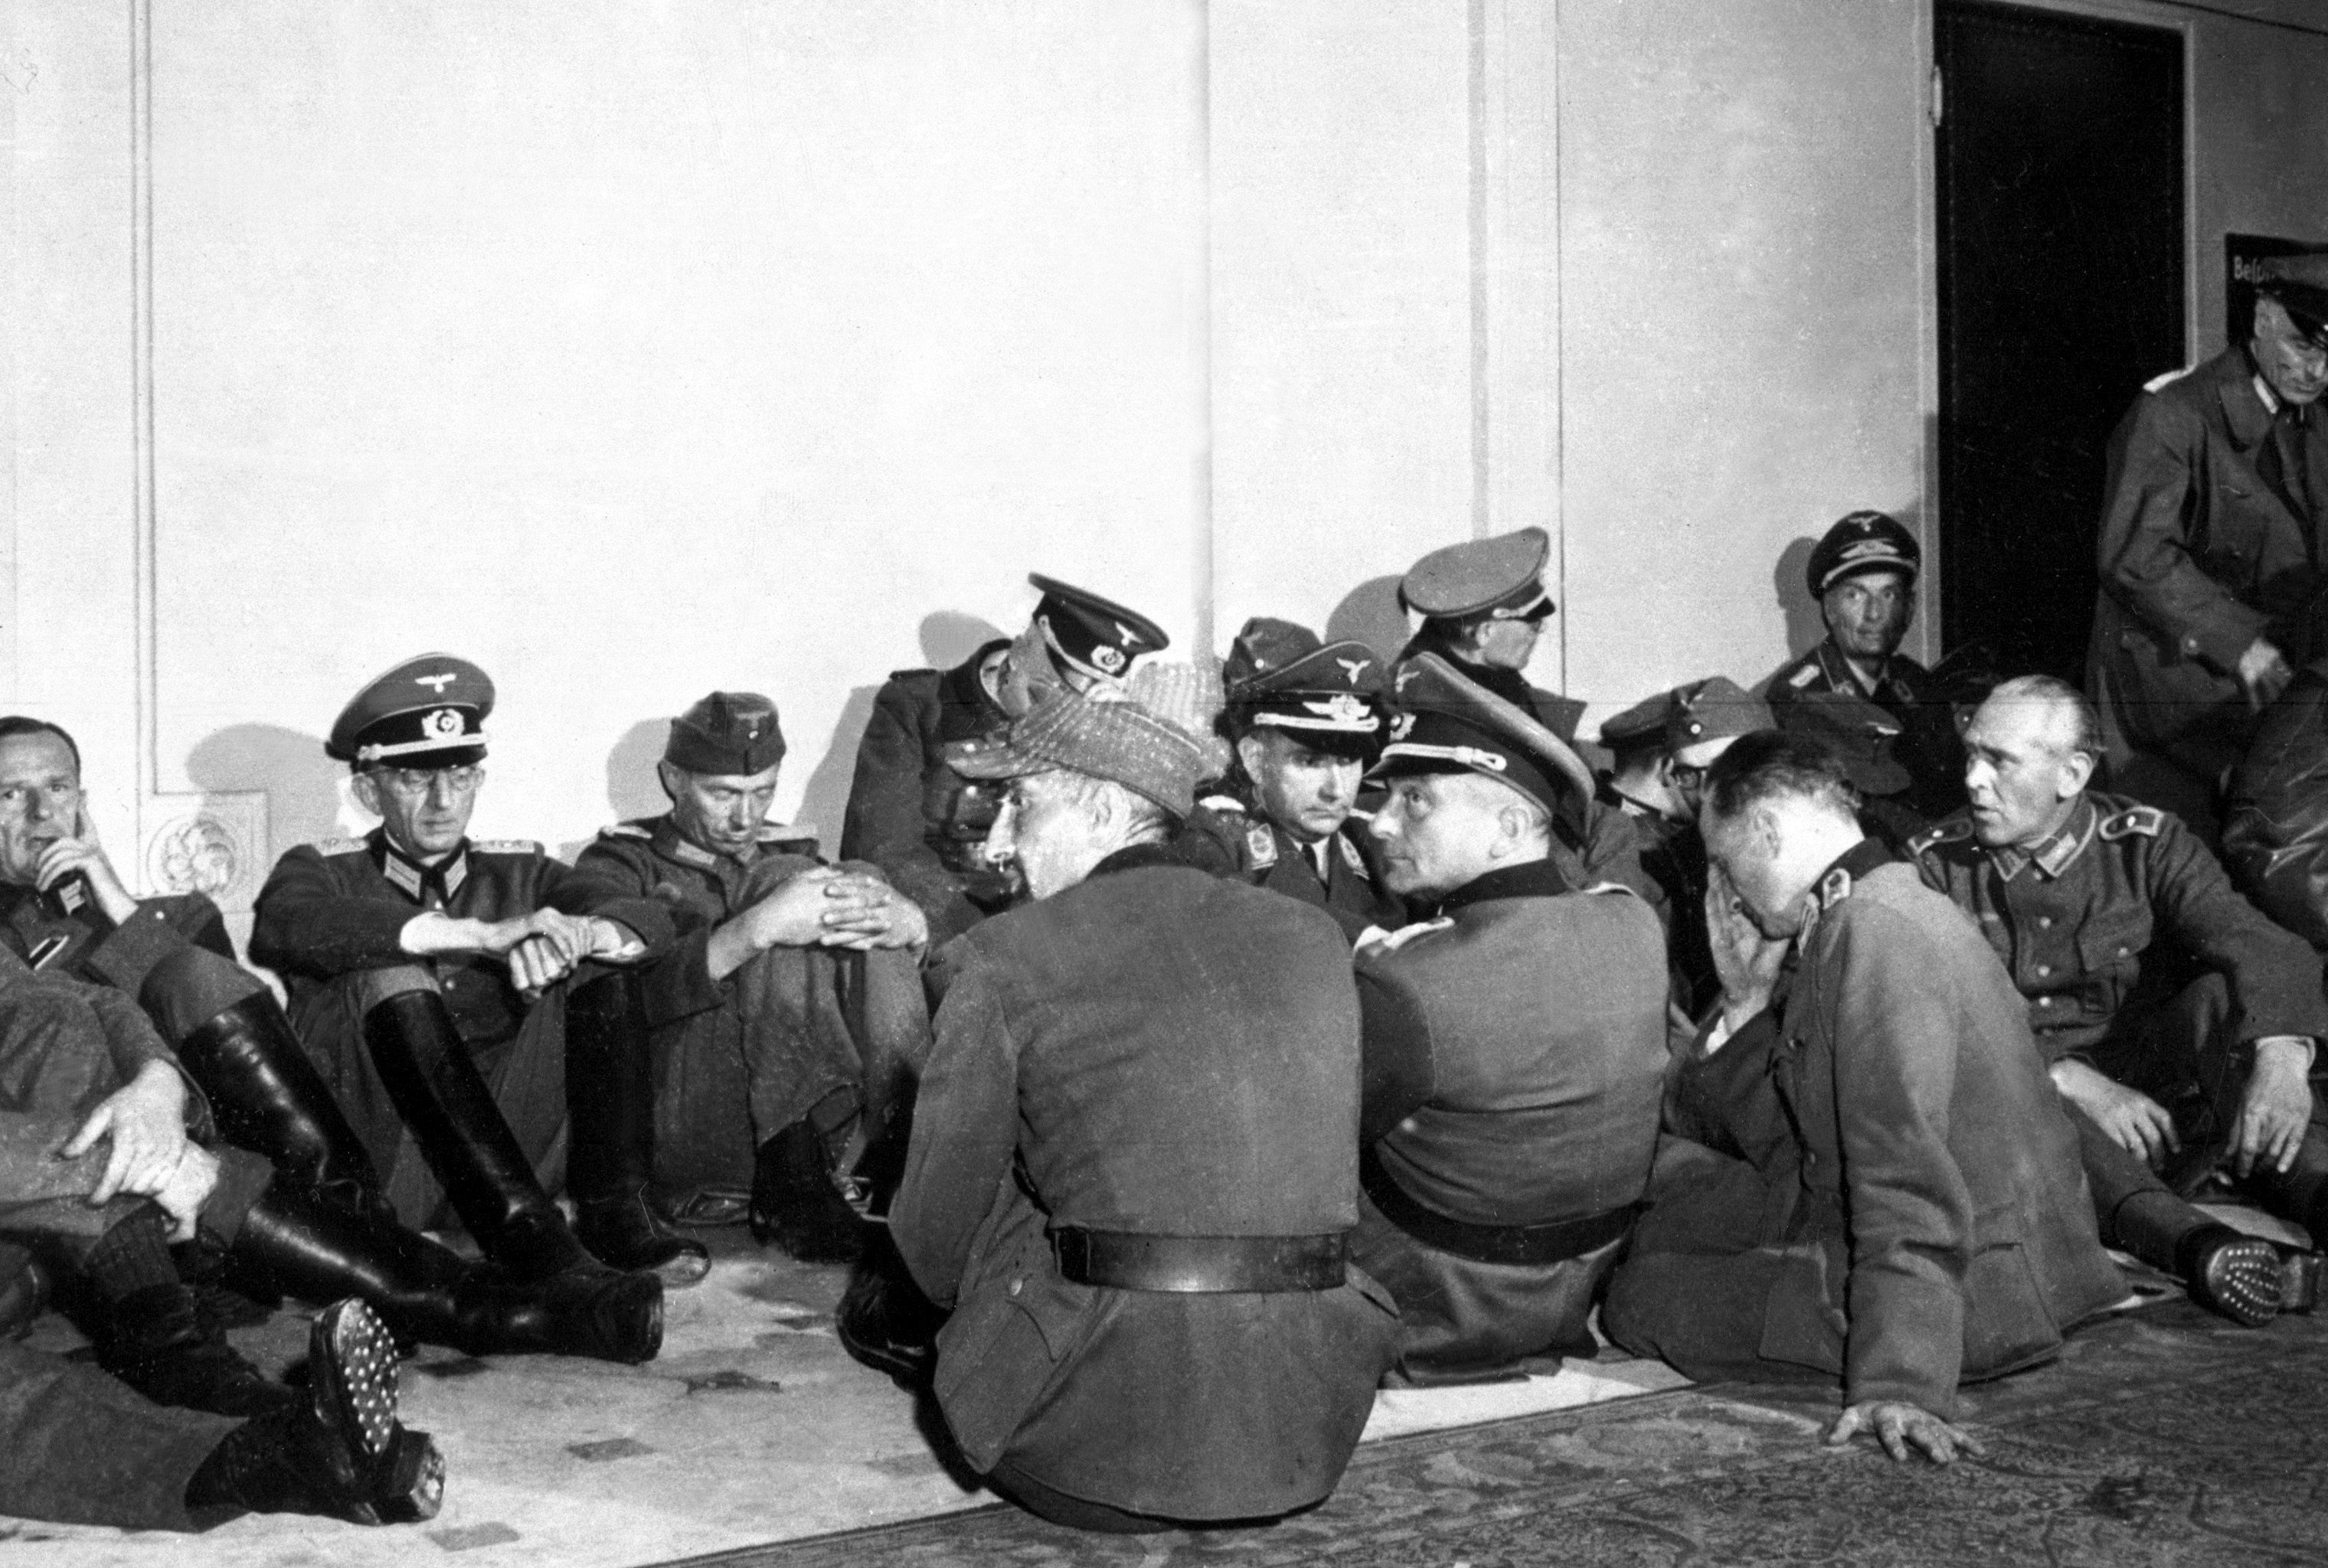 High ranking German officers seized by Free French troops which liberated their country's capital are lodged in the hotel Majestic, headquarters for the Wehrmacht in the days of the Nazi occupation. Paris, France, August 26, 1944. Lovell. (Army).NARA FILE #: 111-SC-193010.